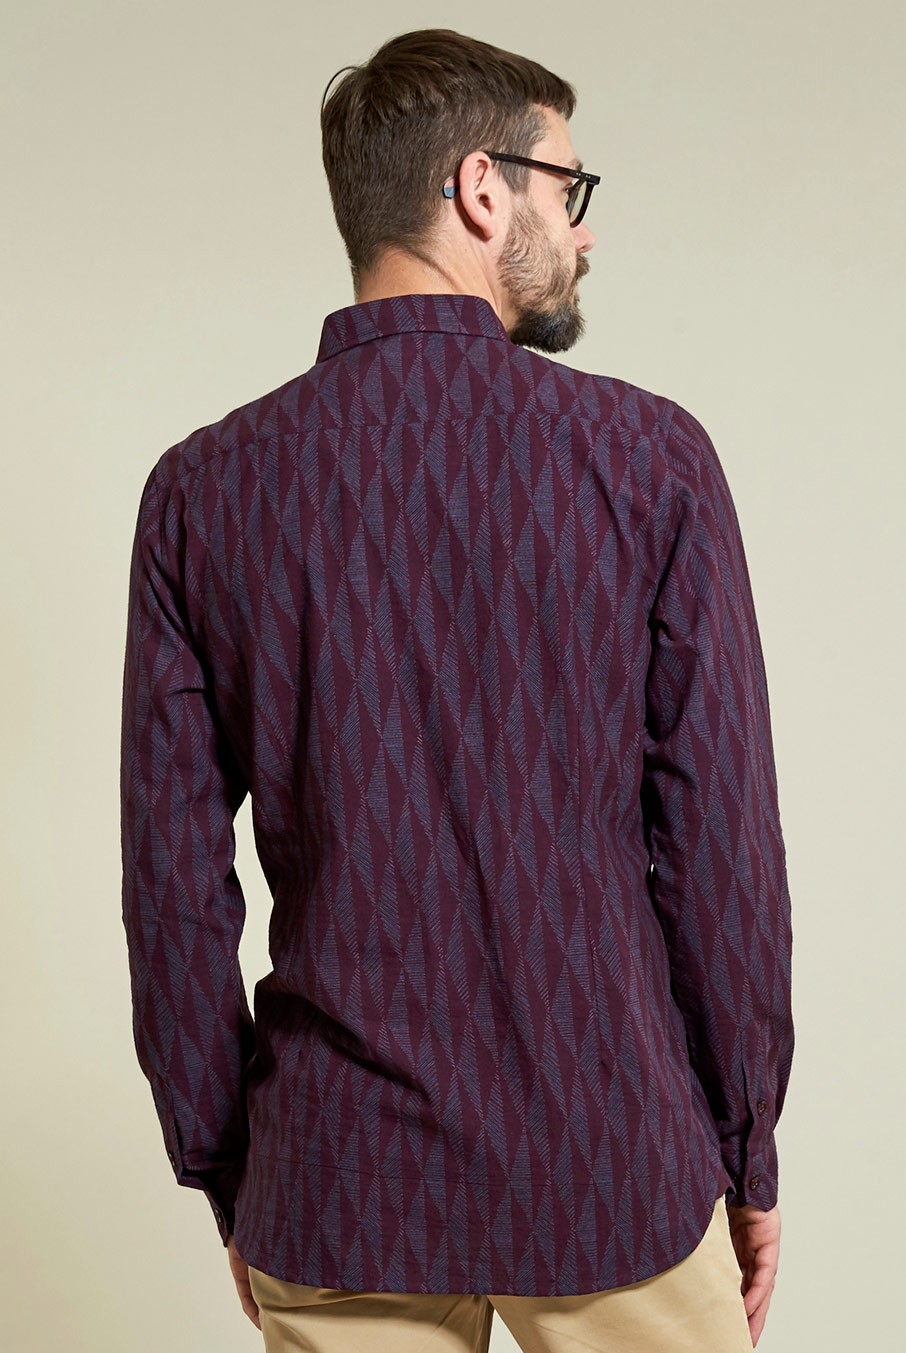 Chisle Long Sleeve Shirt